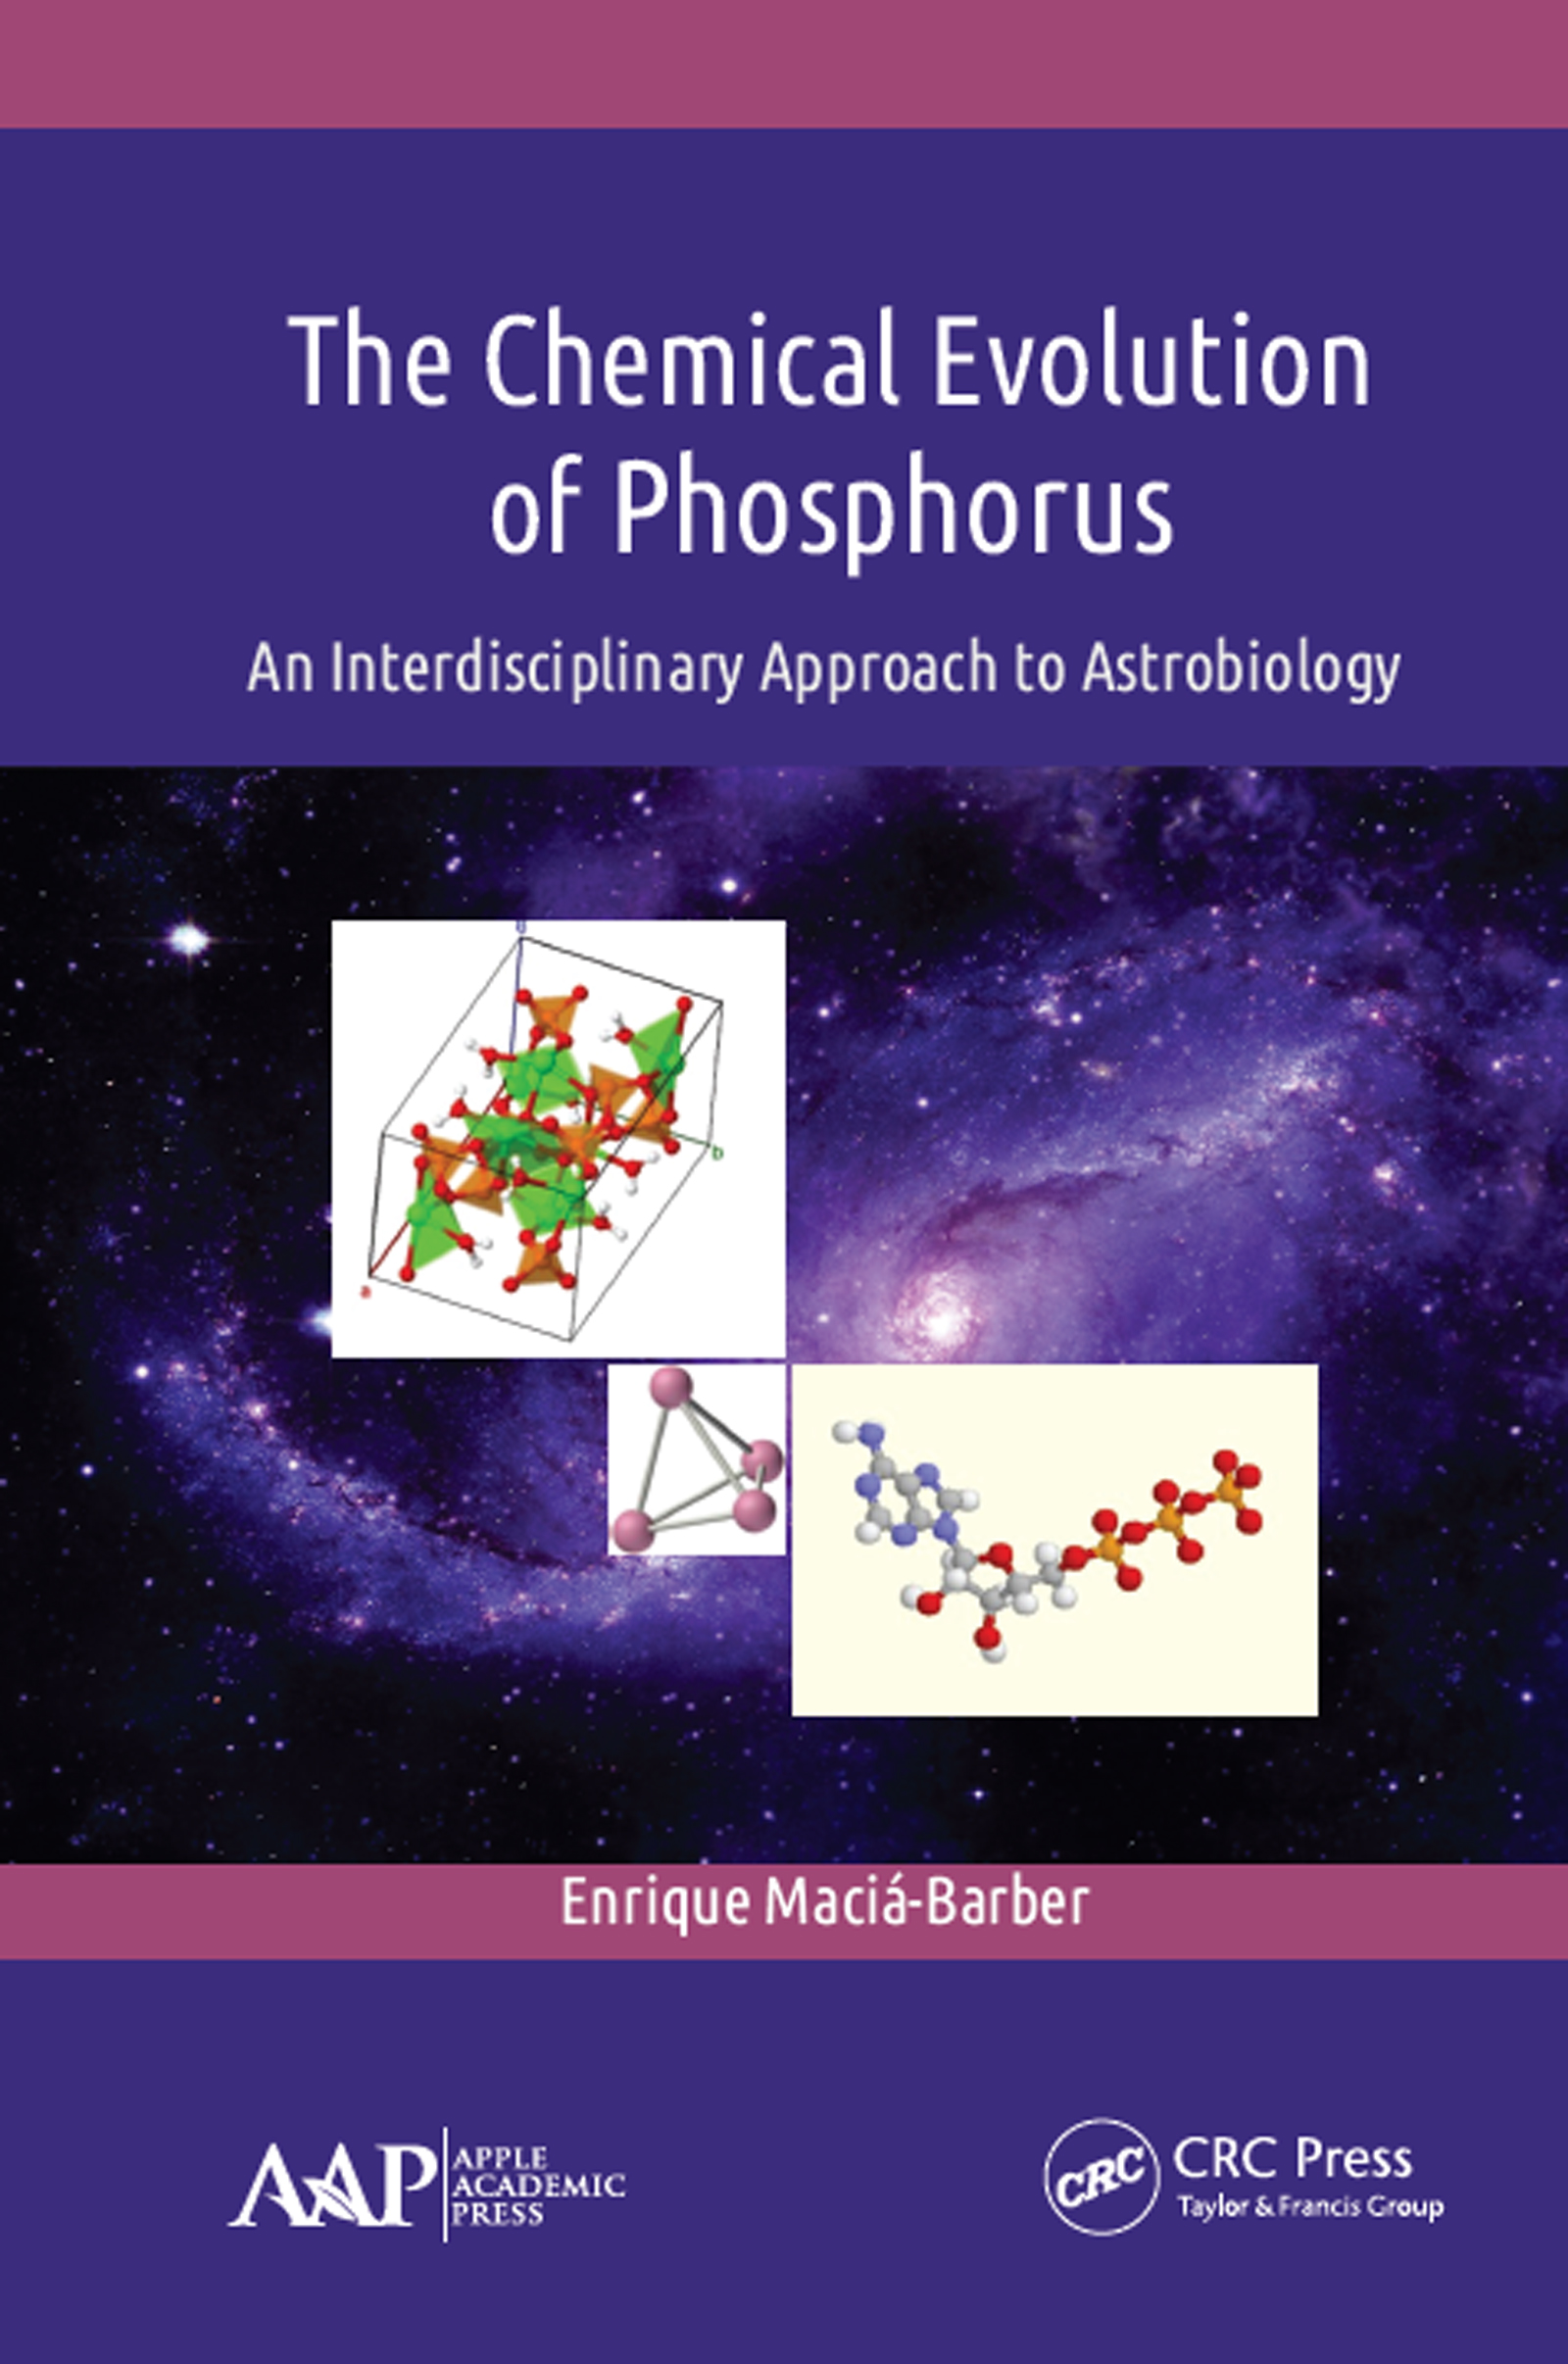 Prebiotic Chemical Evolution and the Phosphate Problem